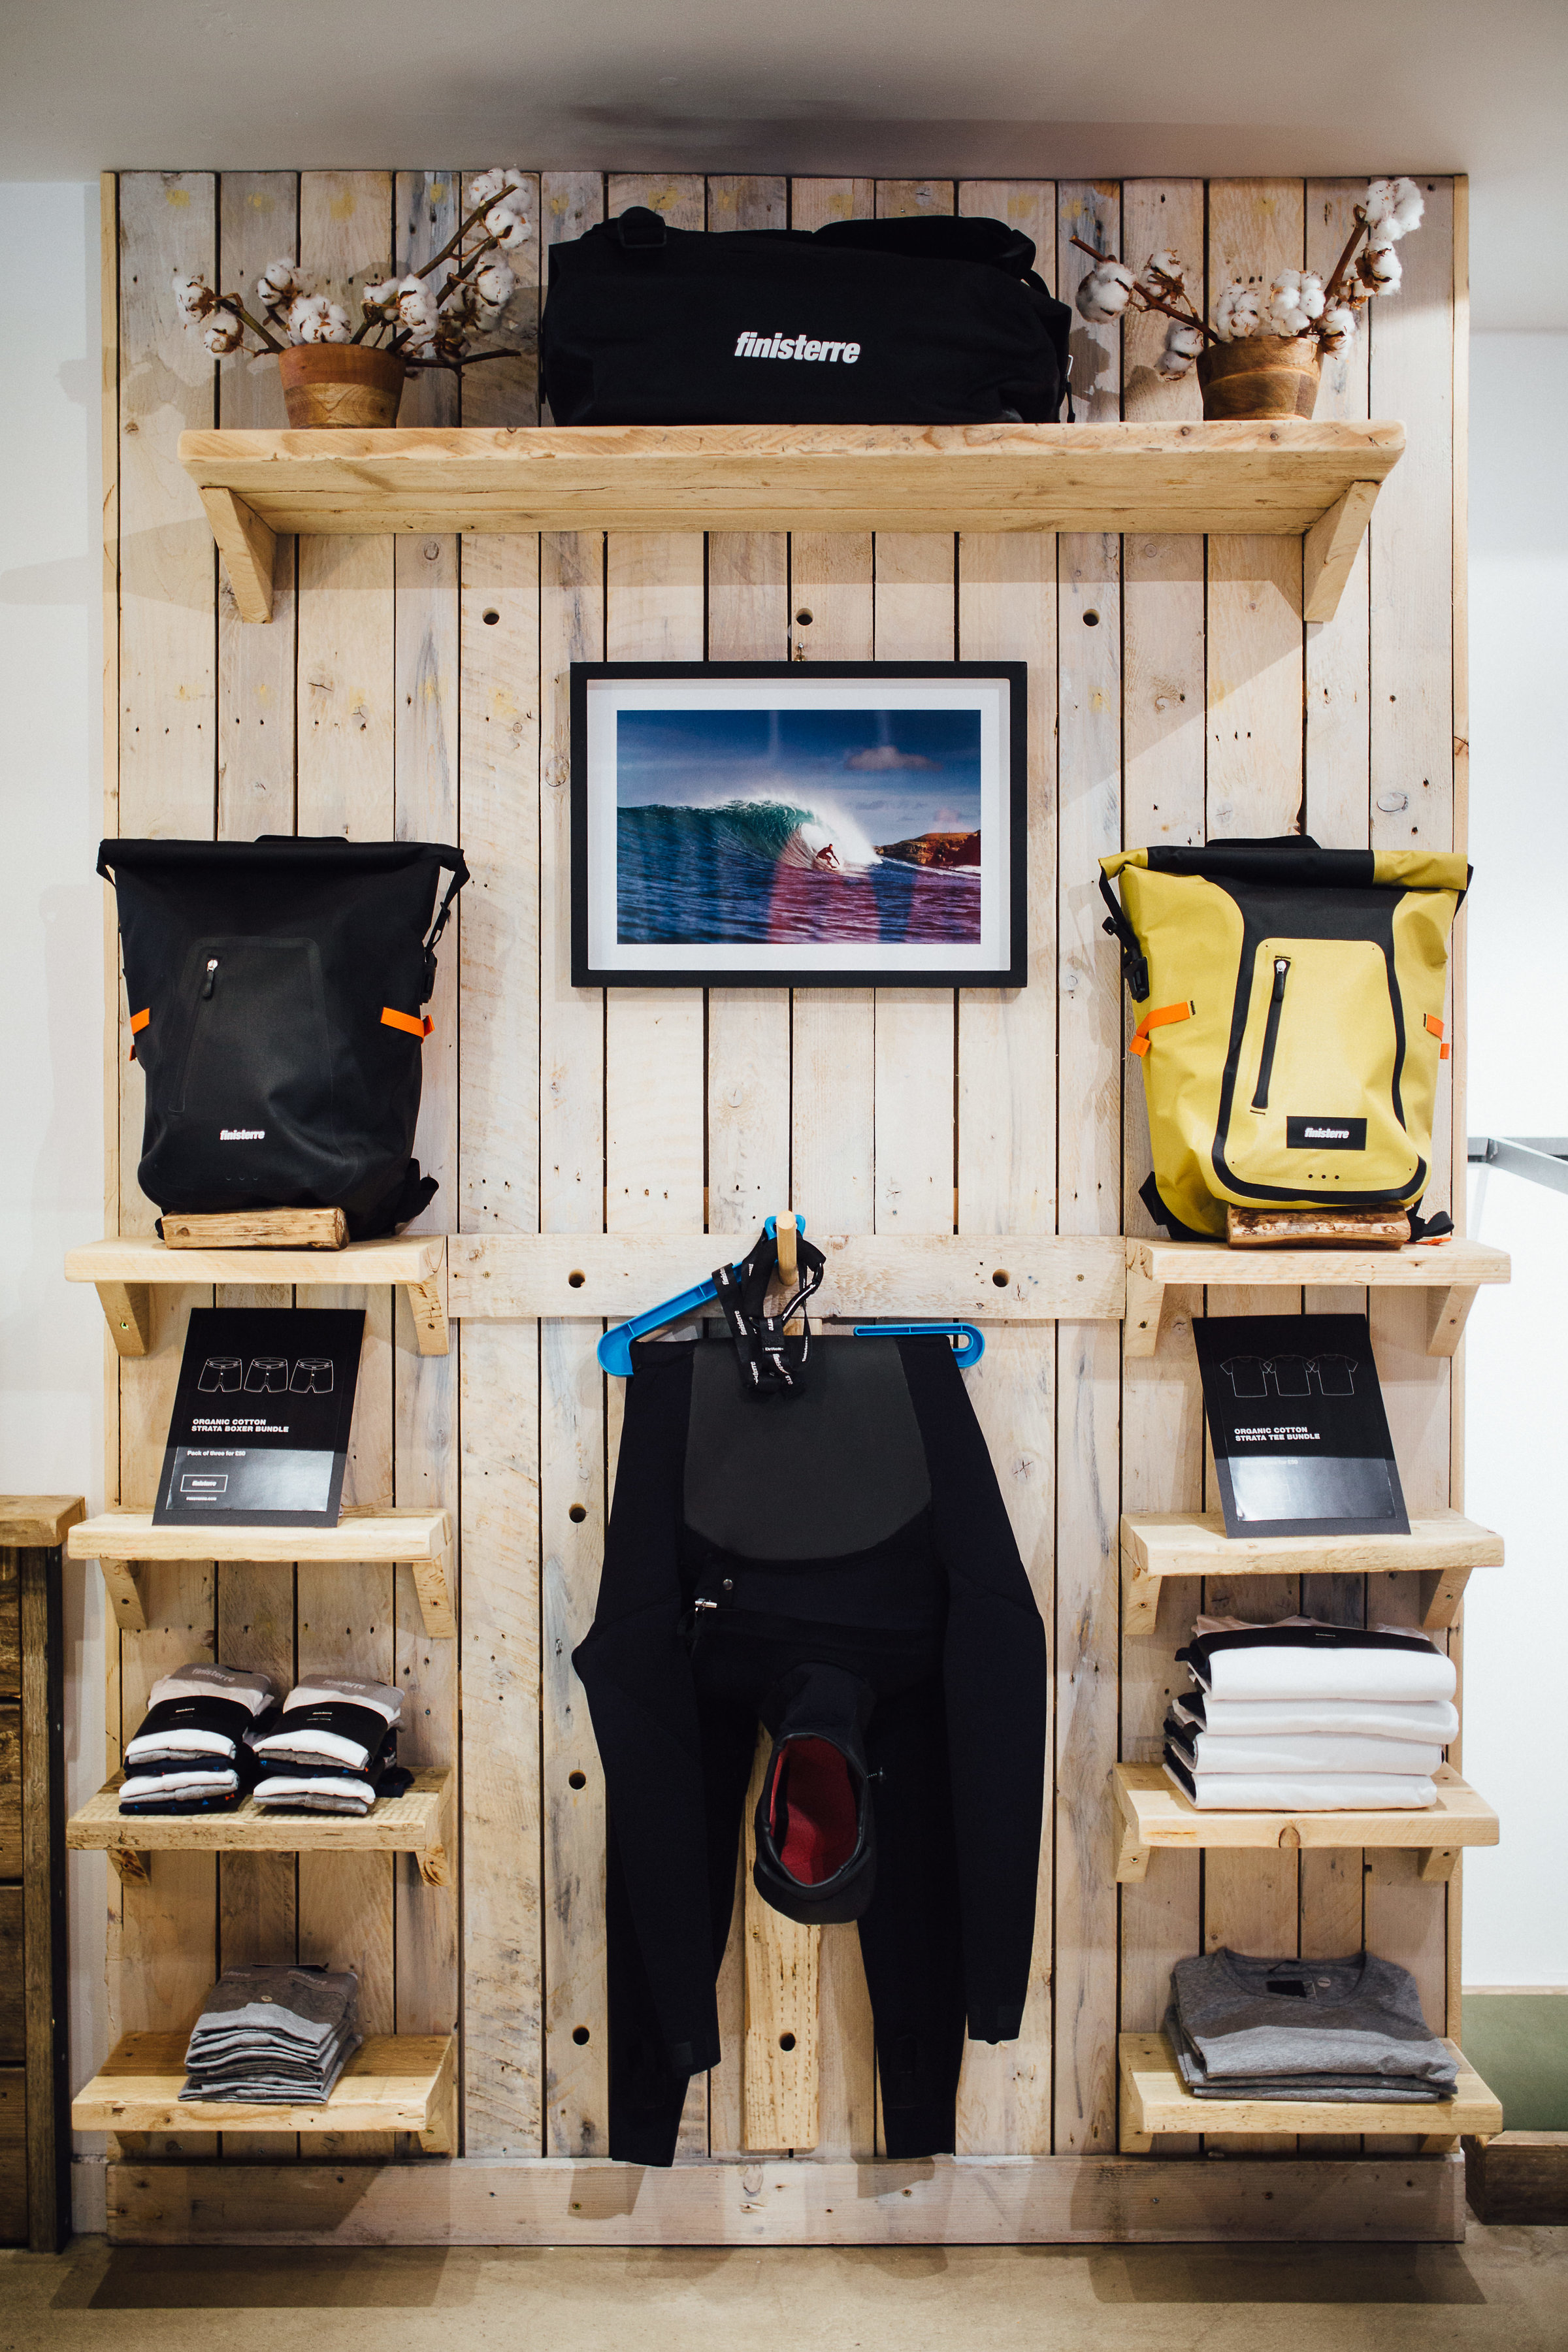 Jonathan-Simpson-Finisterre-London-Store-065.jpg